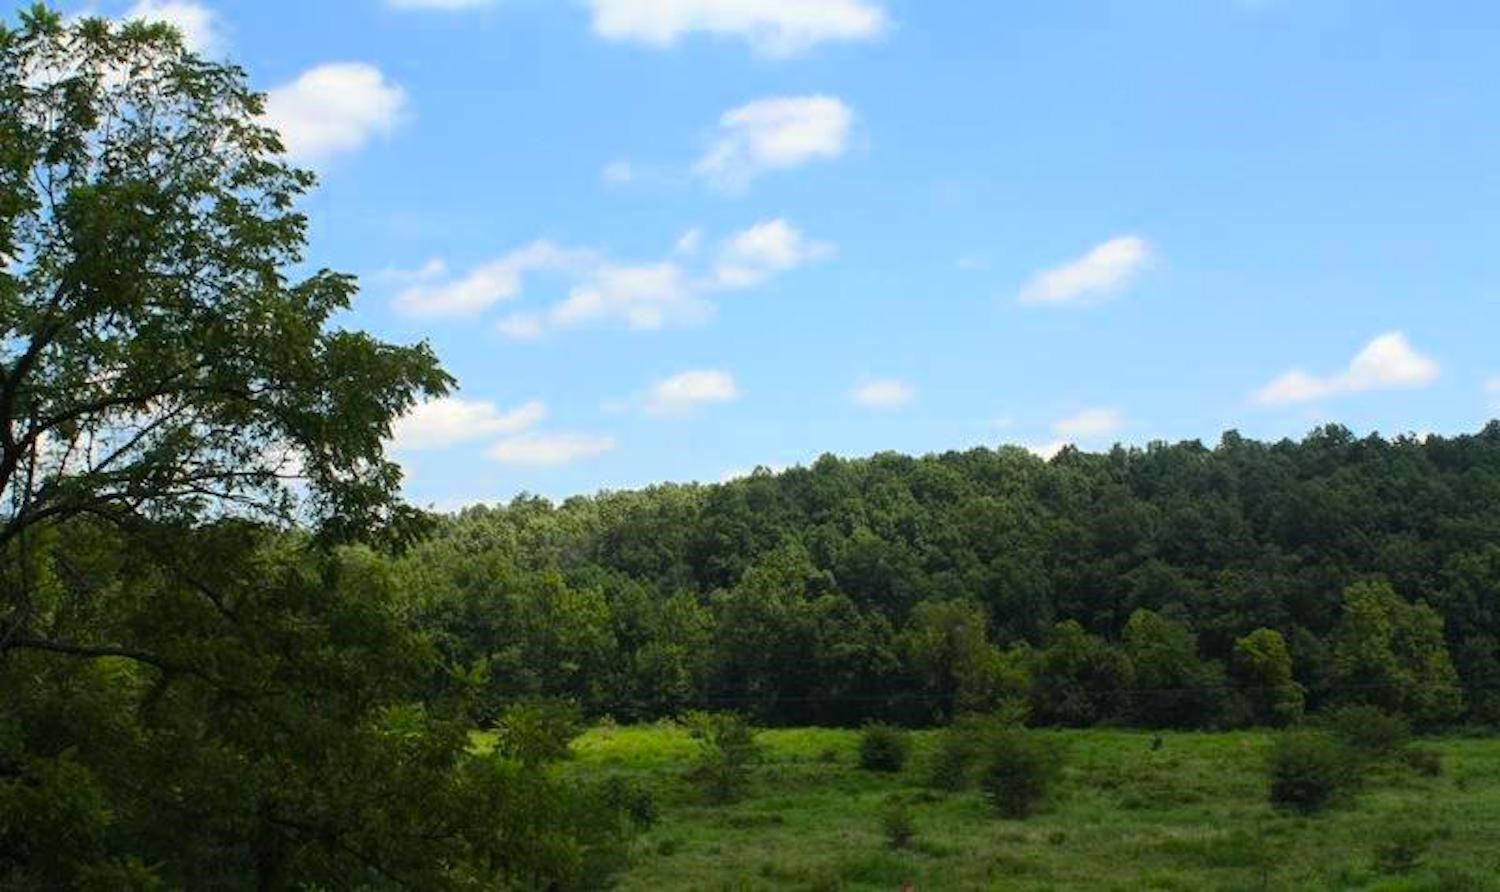 Land for Sale in Howell County